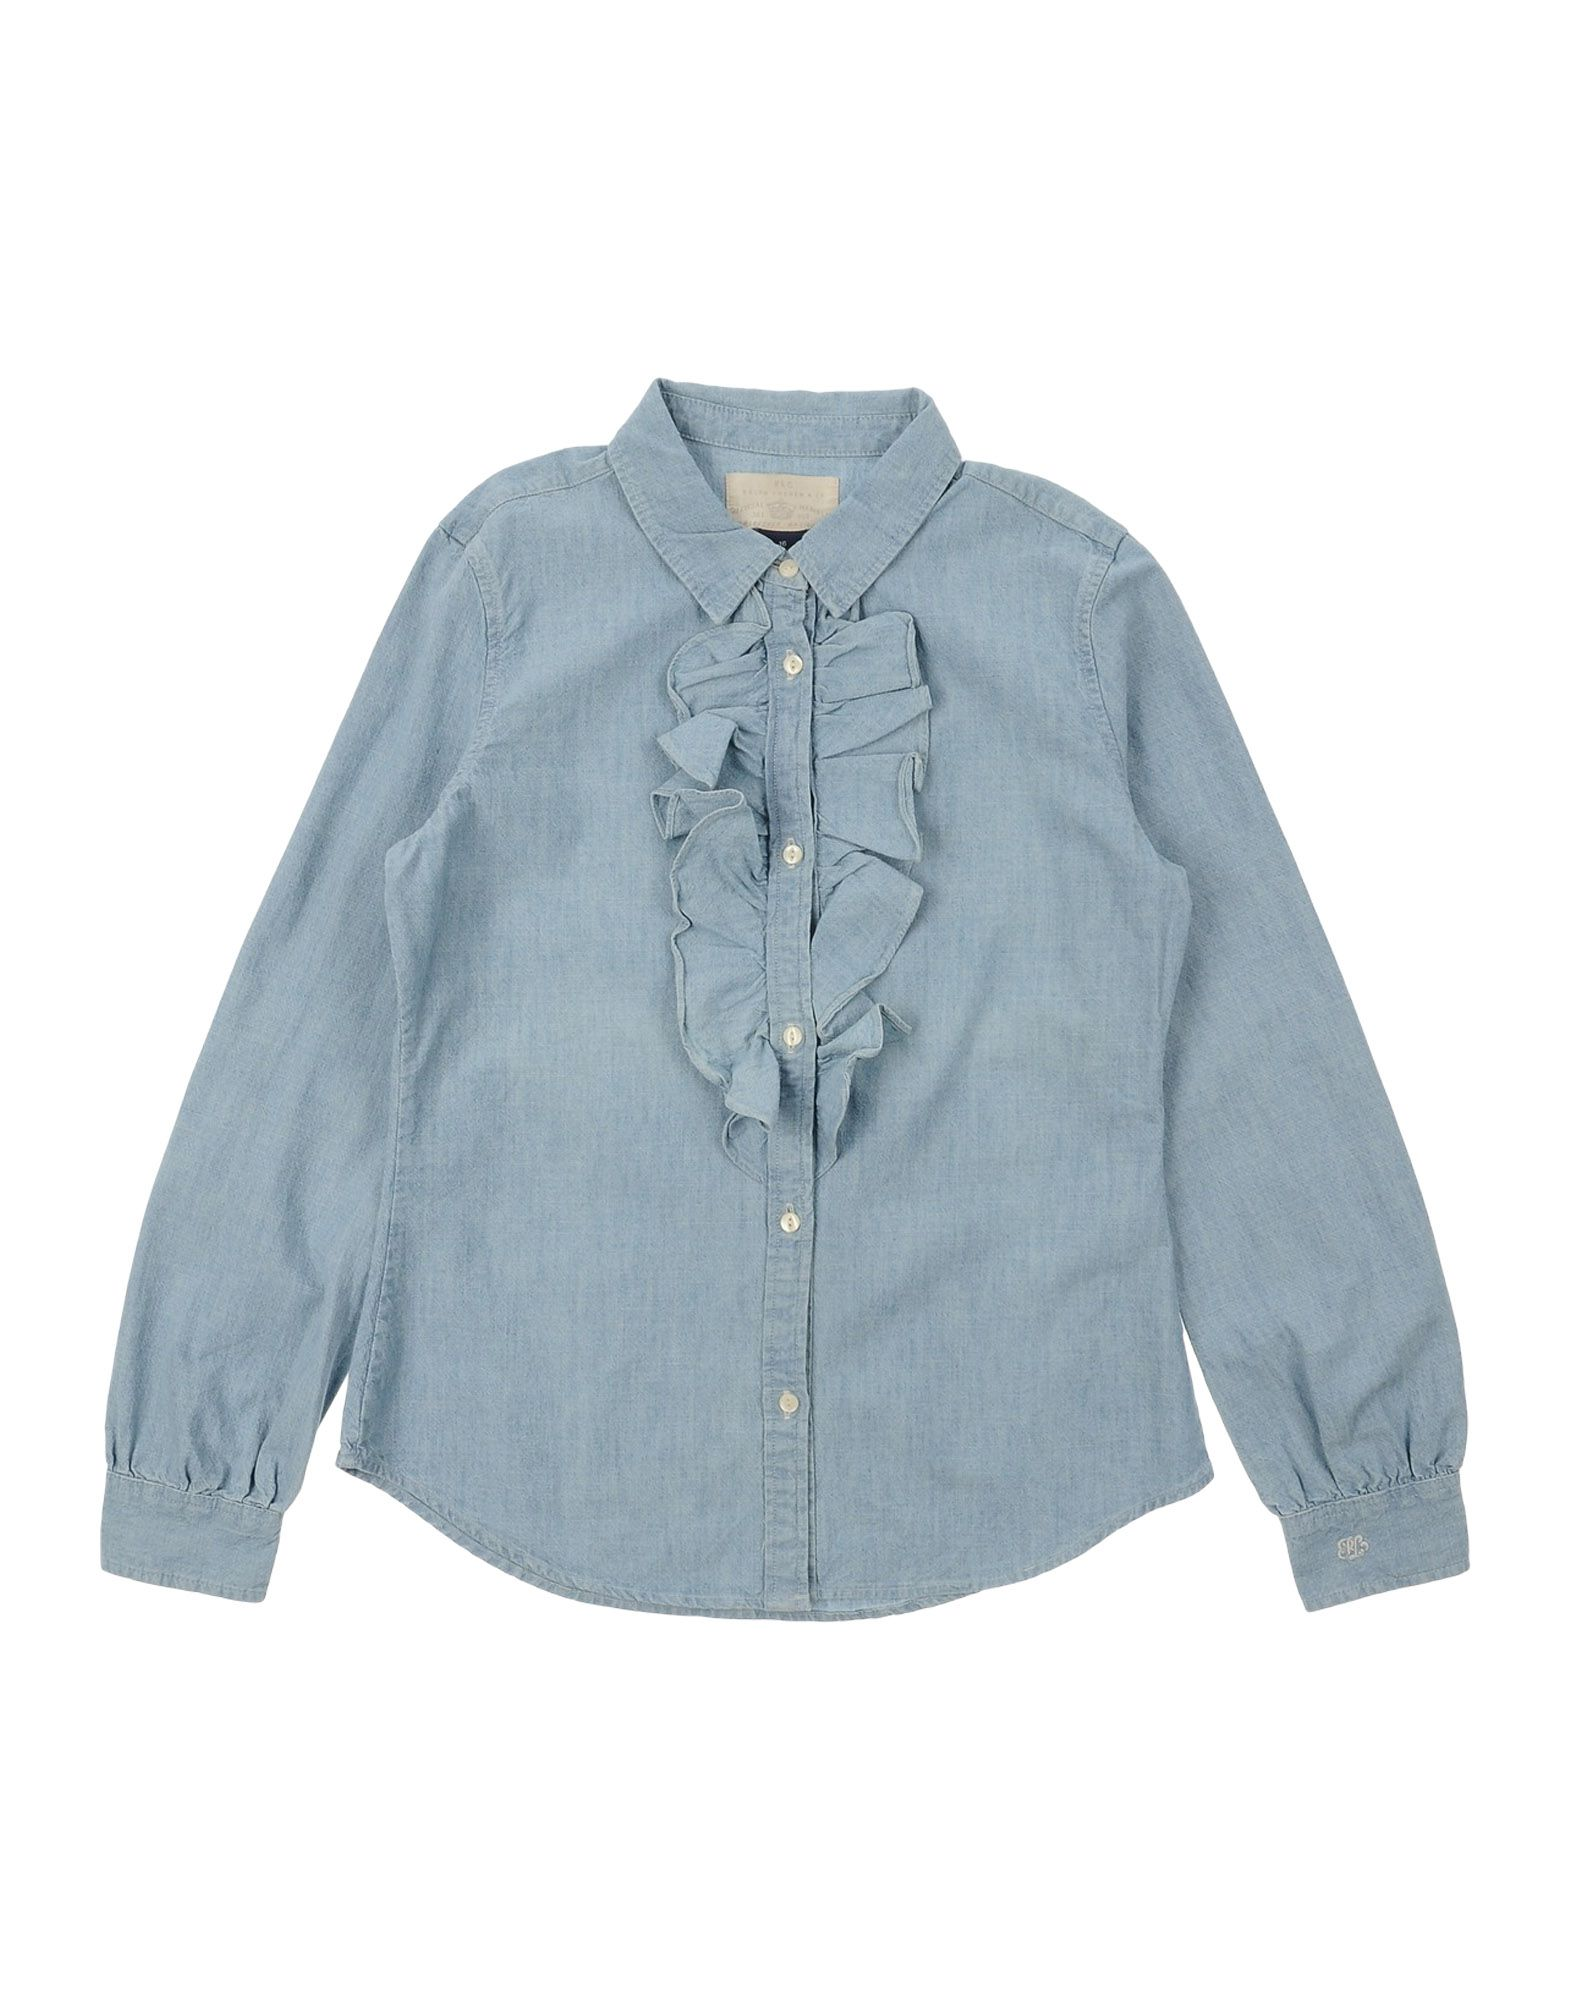 RALPH LAUREN Denim shirts